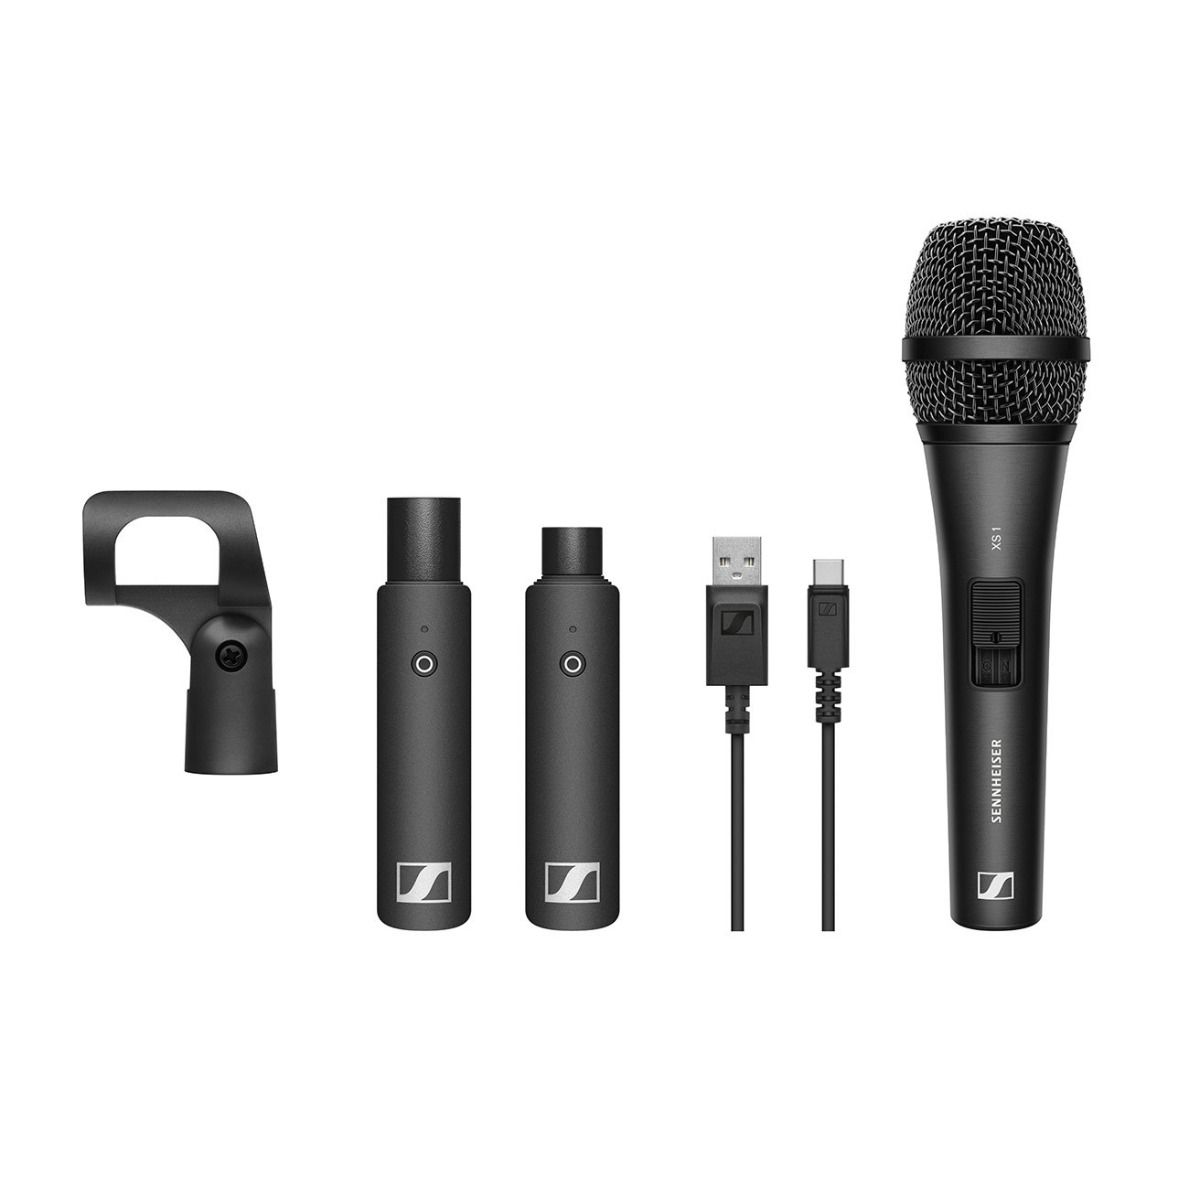 Sennheiser XSW-D Vocal Set - Digital Handheld Wireless System